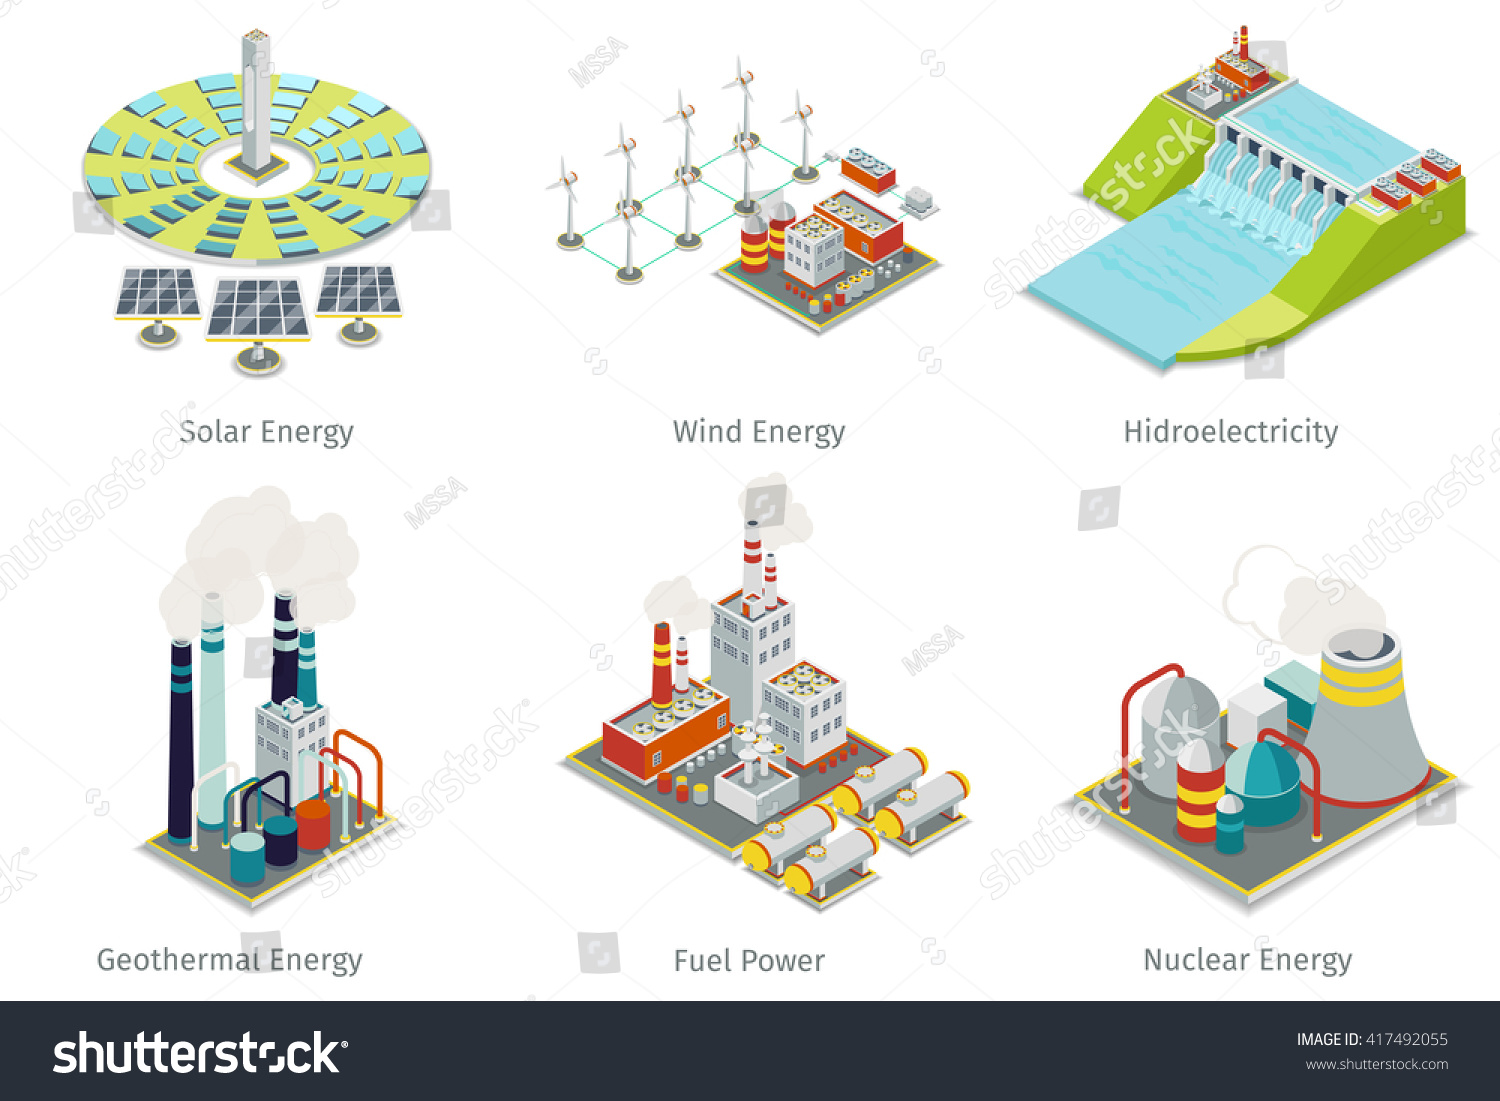 Power Plant Icons Electricity Generation Sources Stock Vector Generating Diagram Hydroelectricity Geothermal Solar And Wind Energy